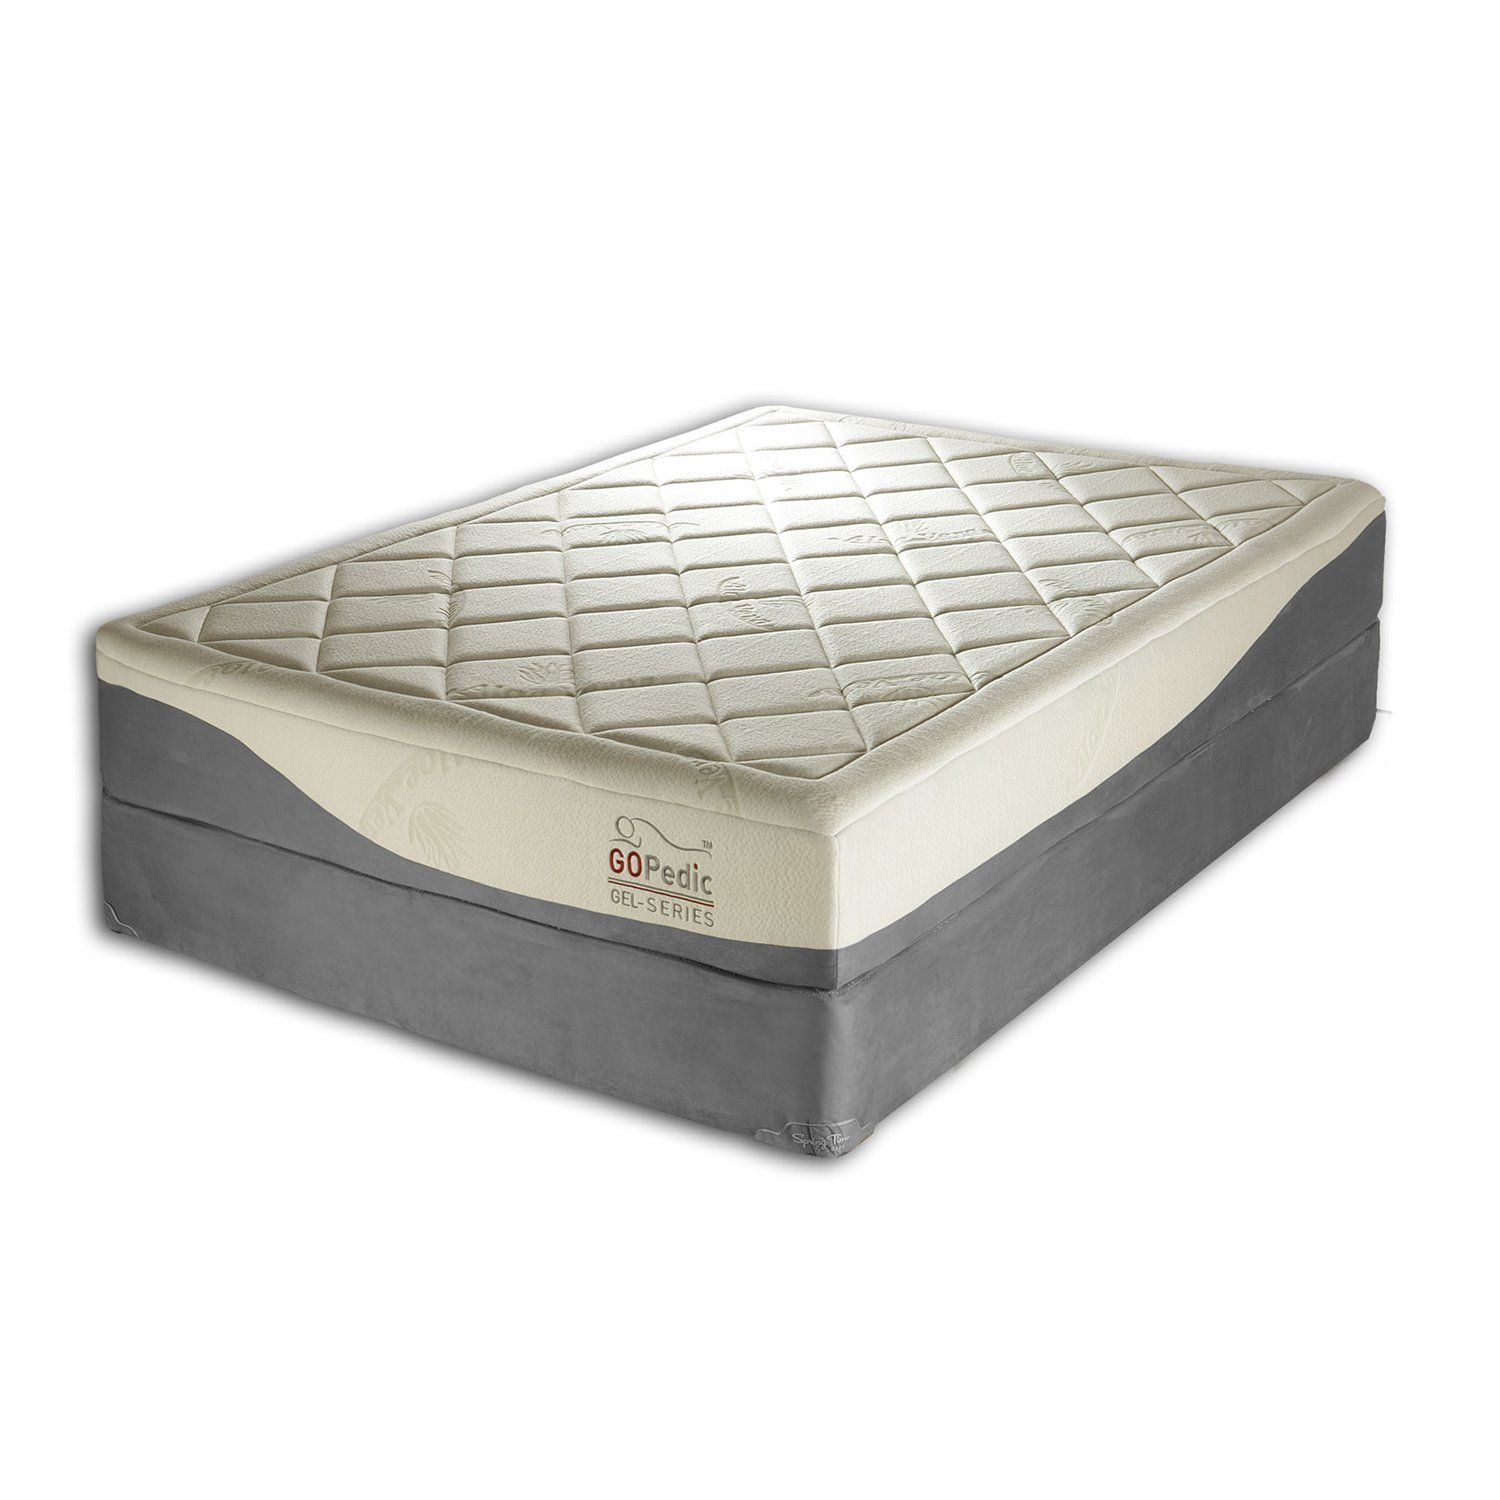 Go Pedic 10 Inch Gel Infused Memory Foam Mattress Full New And Awesome Product Awaits You Rea Memory Foam Mattress Gel Memory Foam Mattress Foam Mattress